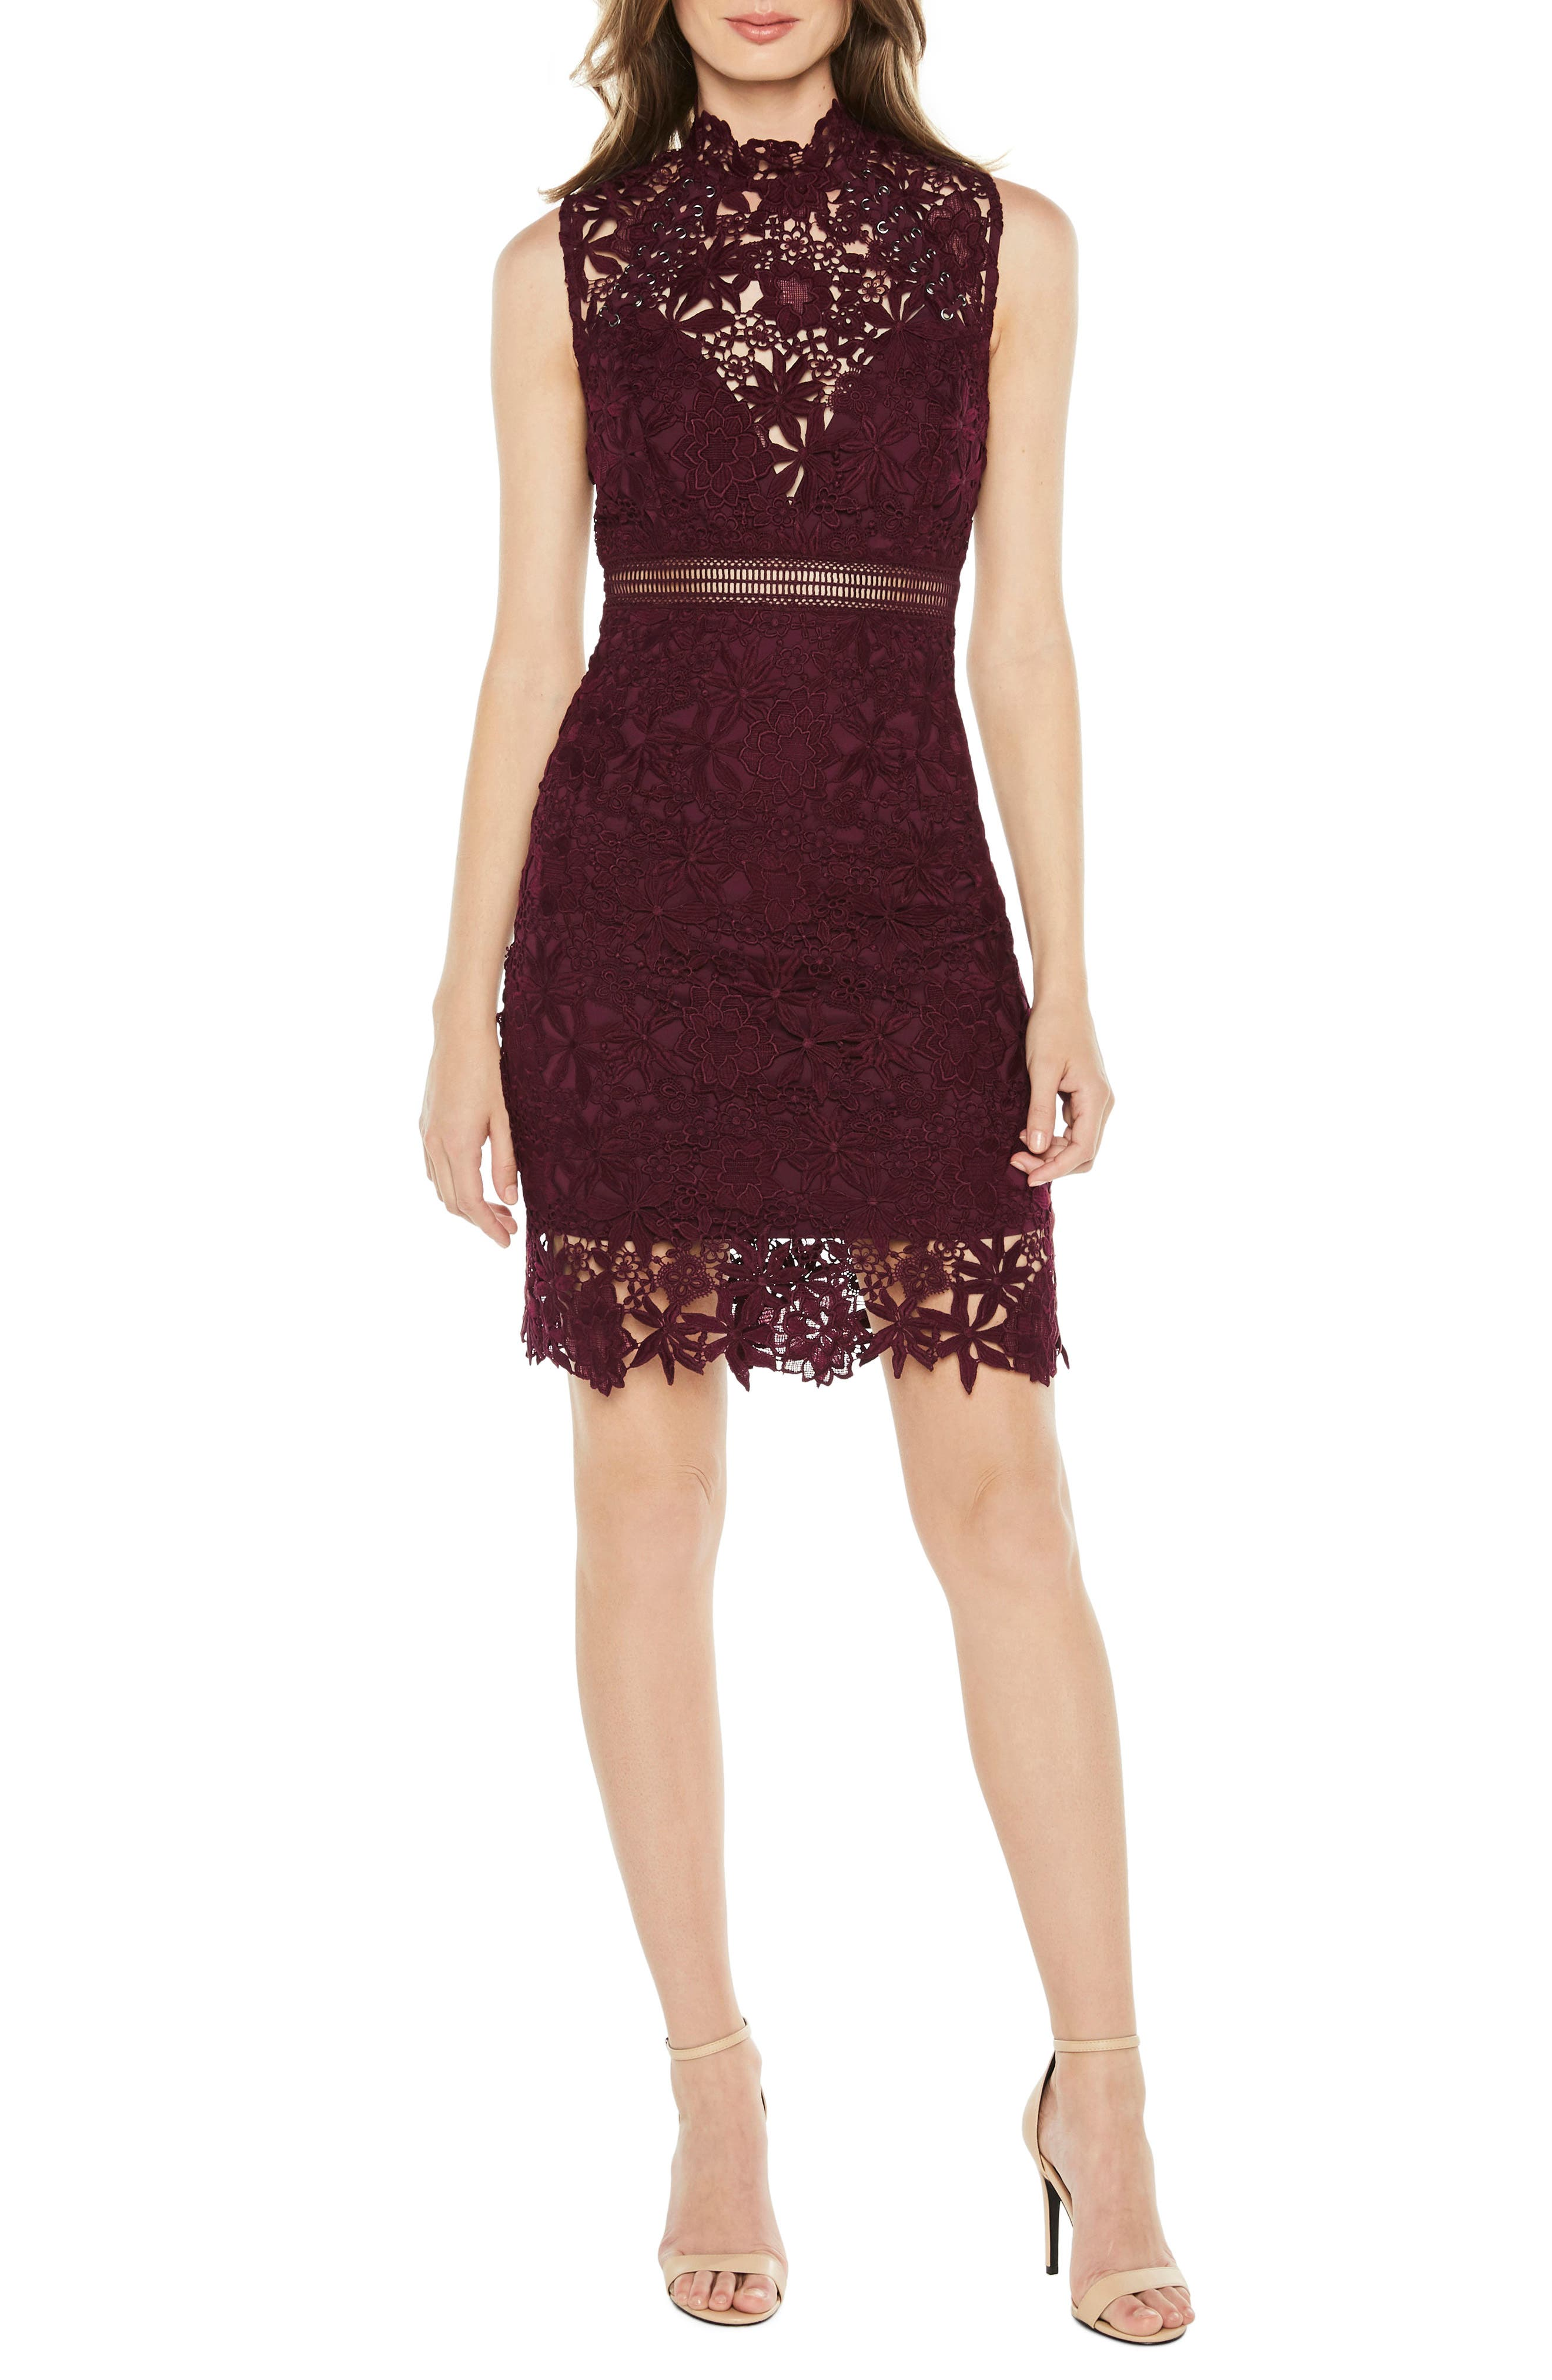 Discount Authentic Outlet Find Great DRESSES - Short dresses JULIA GARNETT Discount Low Price Fee Shipping wRKHi